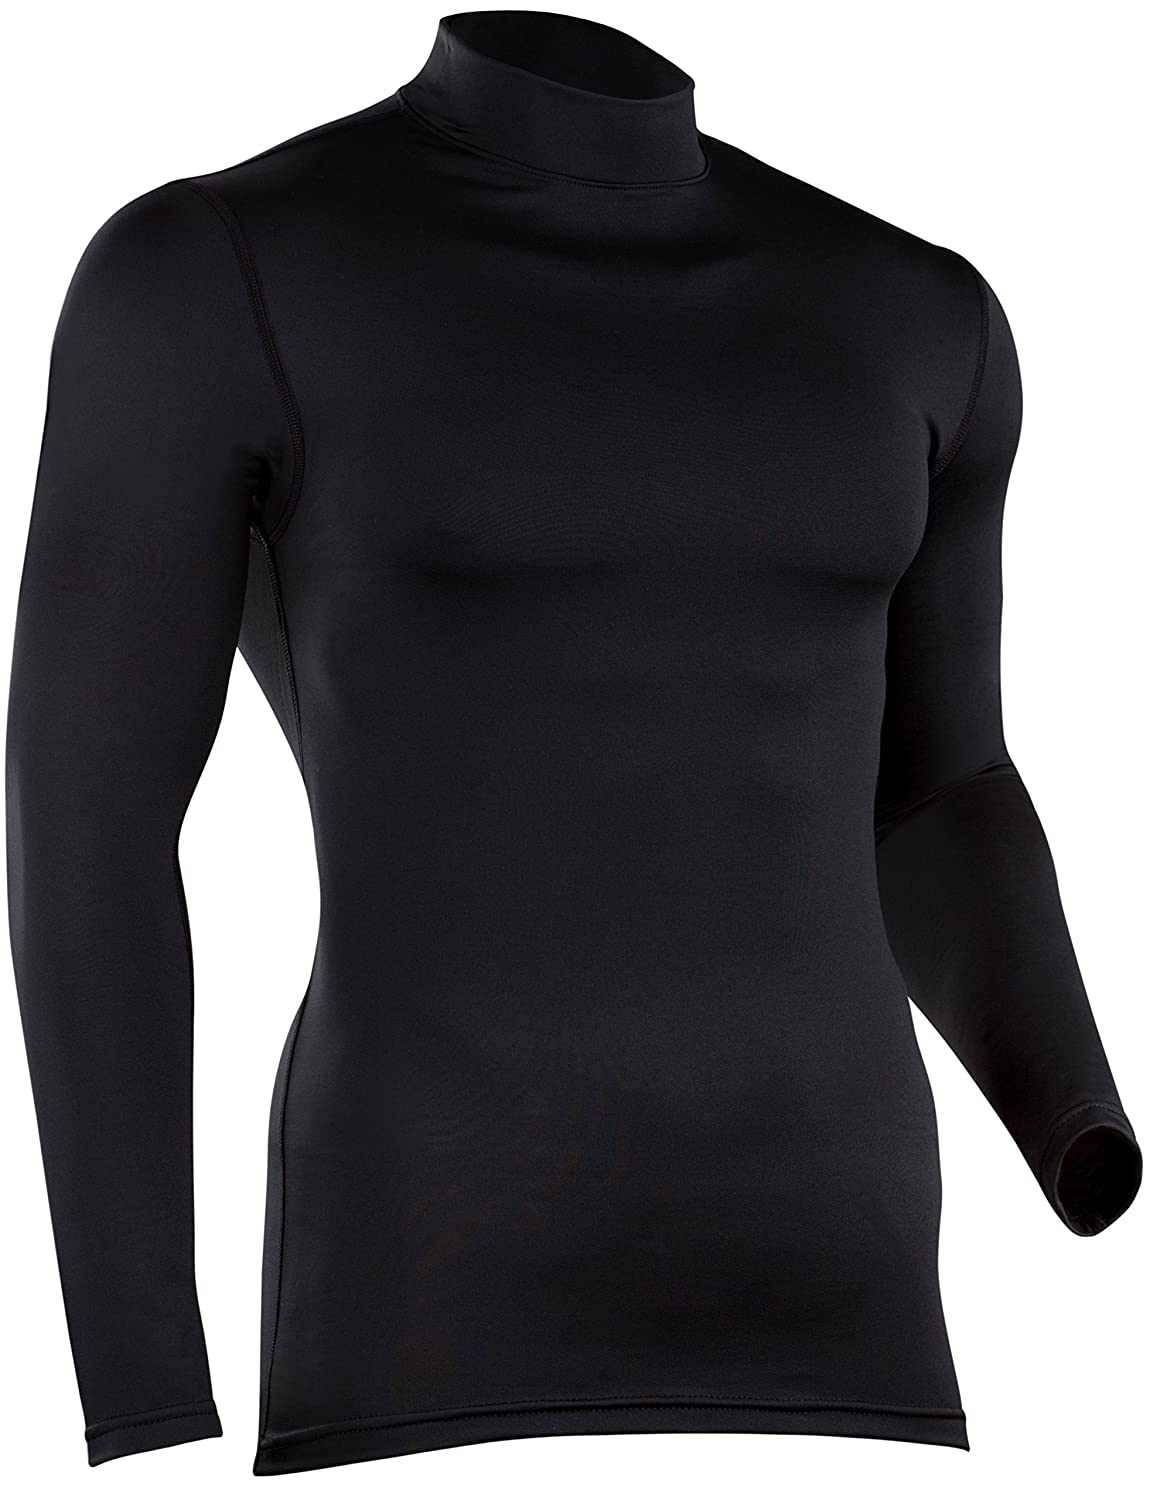 ColdPruf Mens Quest Performance Base Layer Long Sleeve Mock Neck Top ColdPruf Baselayer